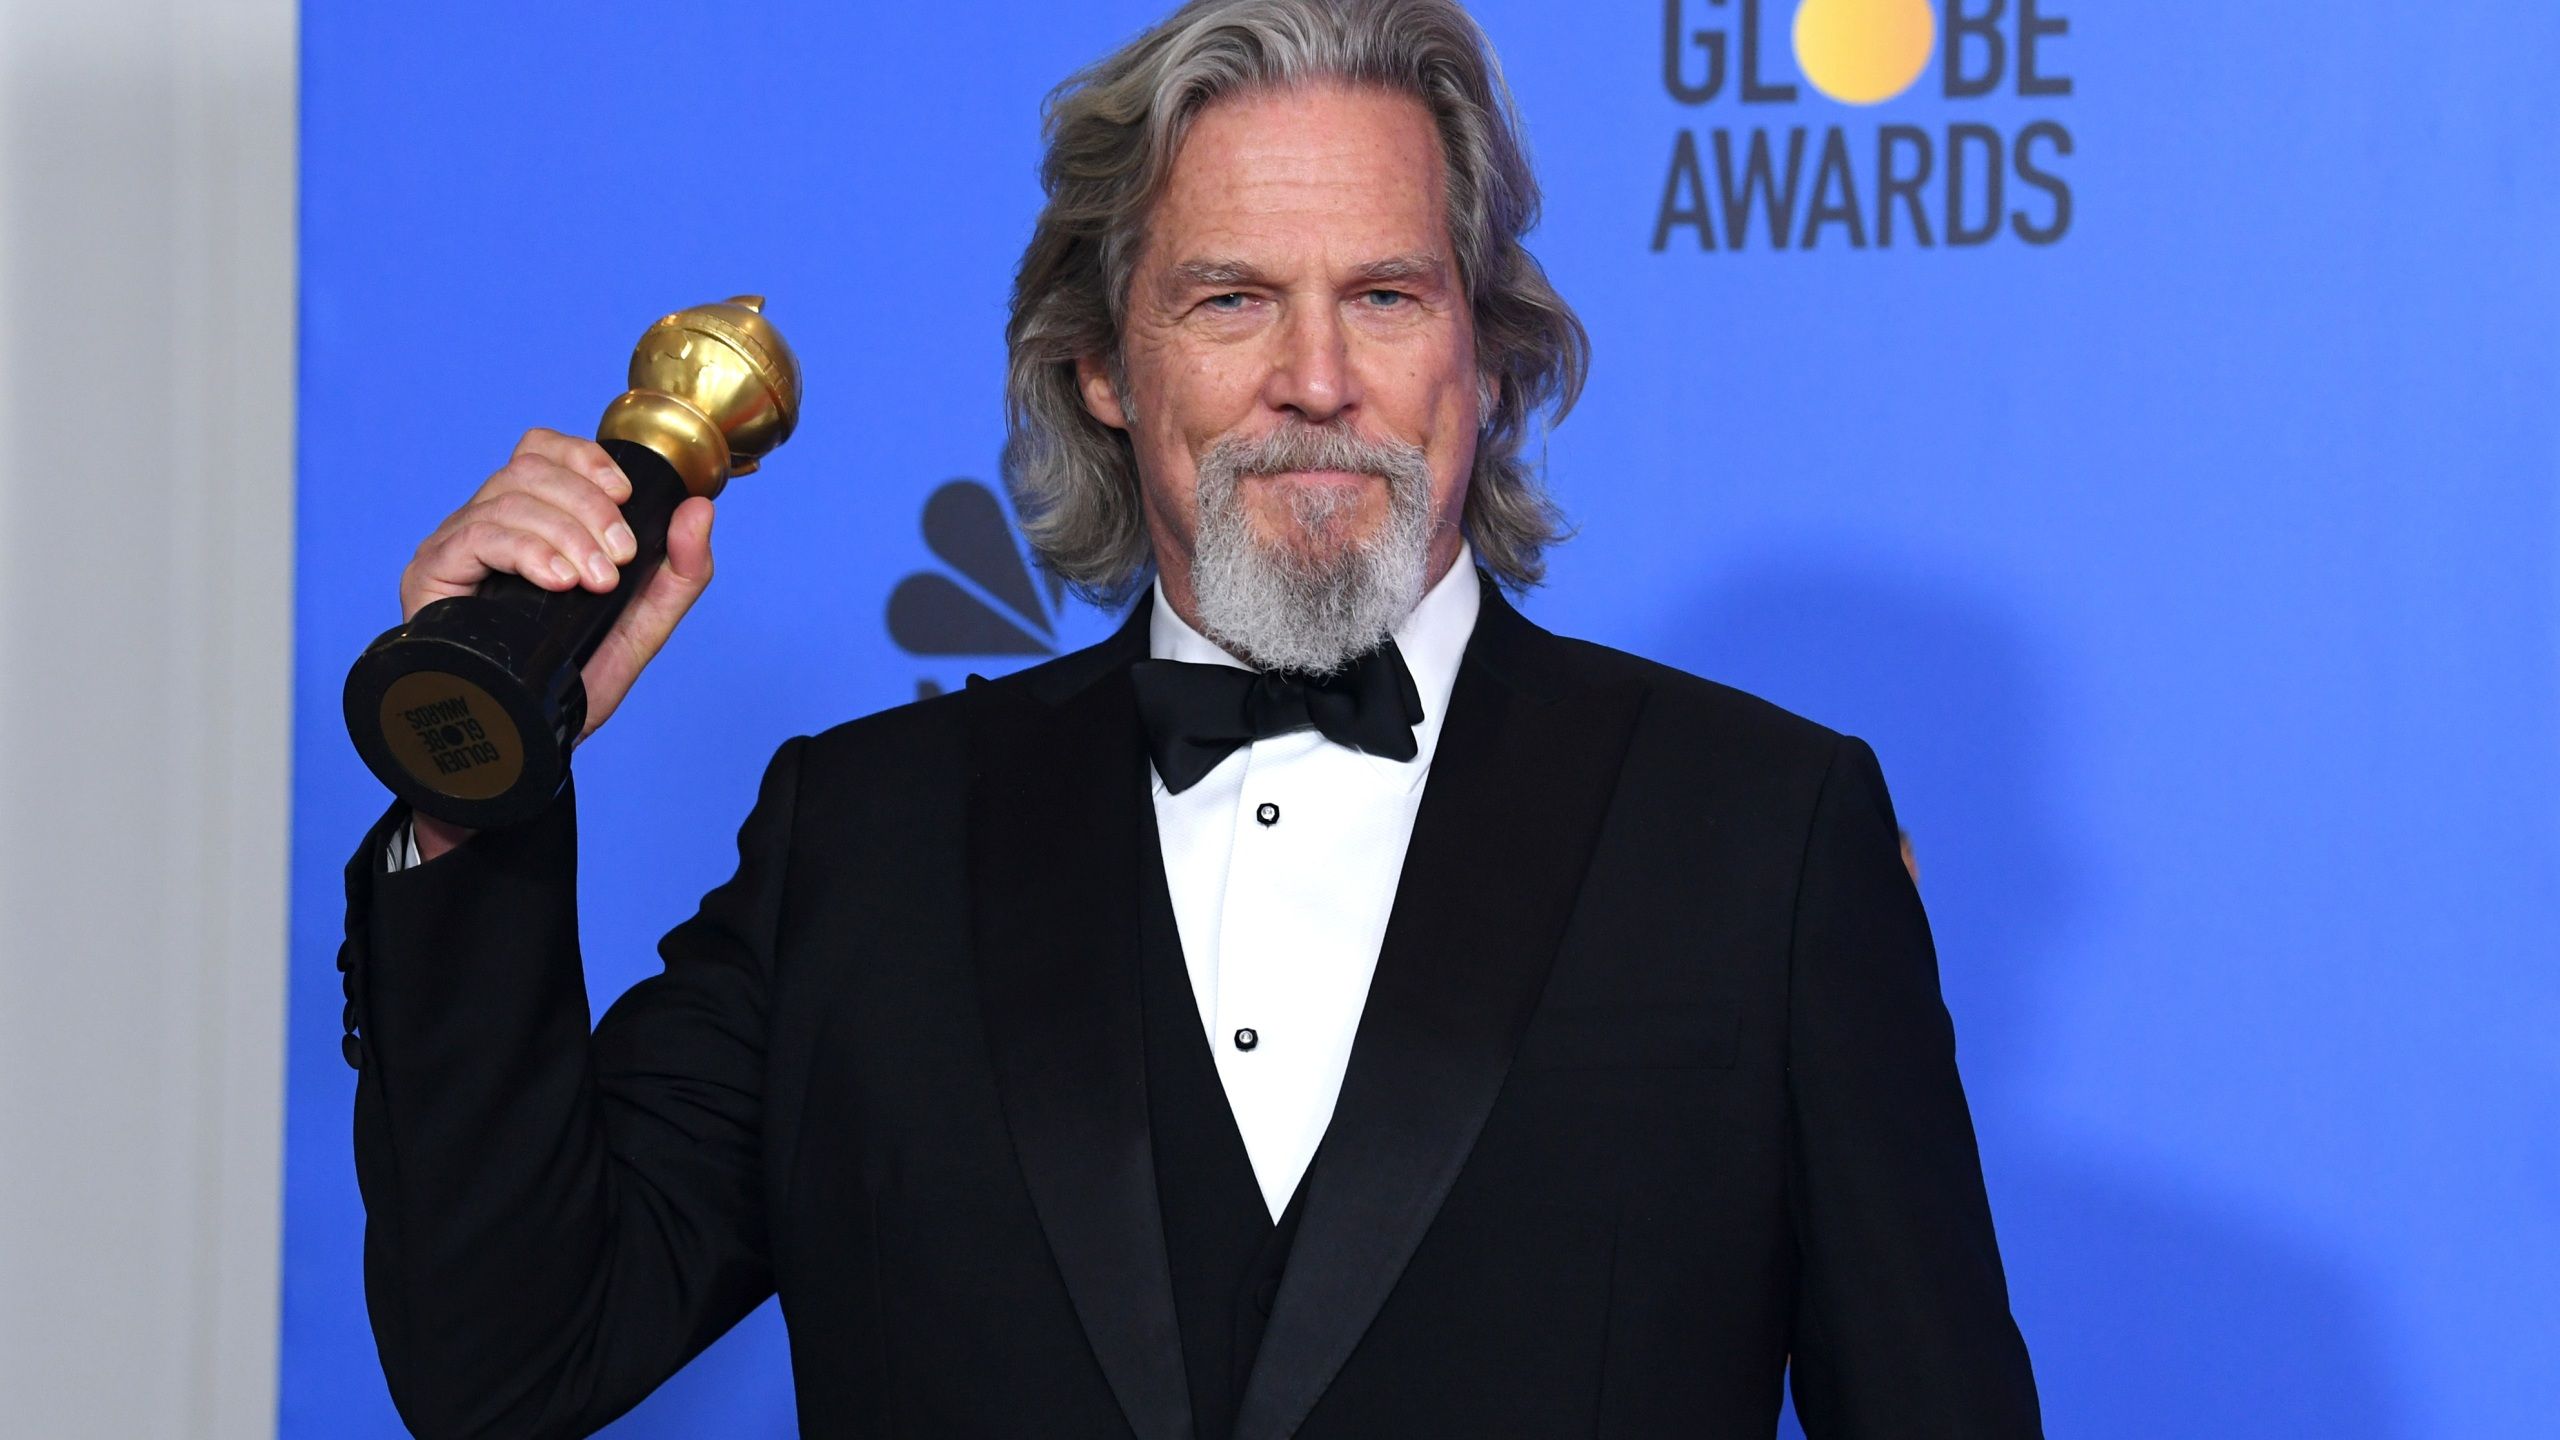 Cecil B. DeMille Award winner Jeff Bridges